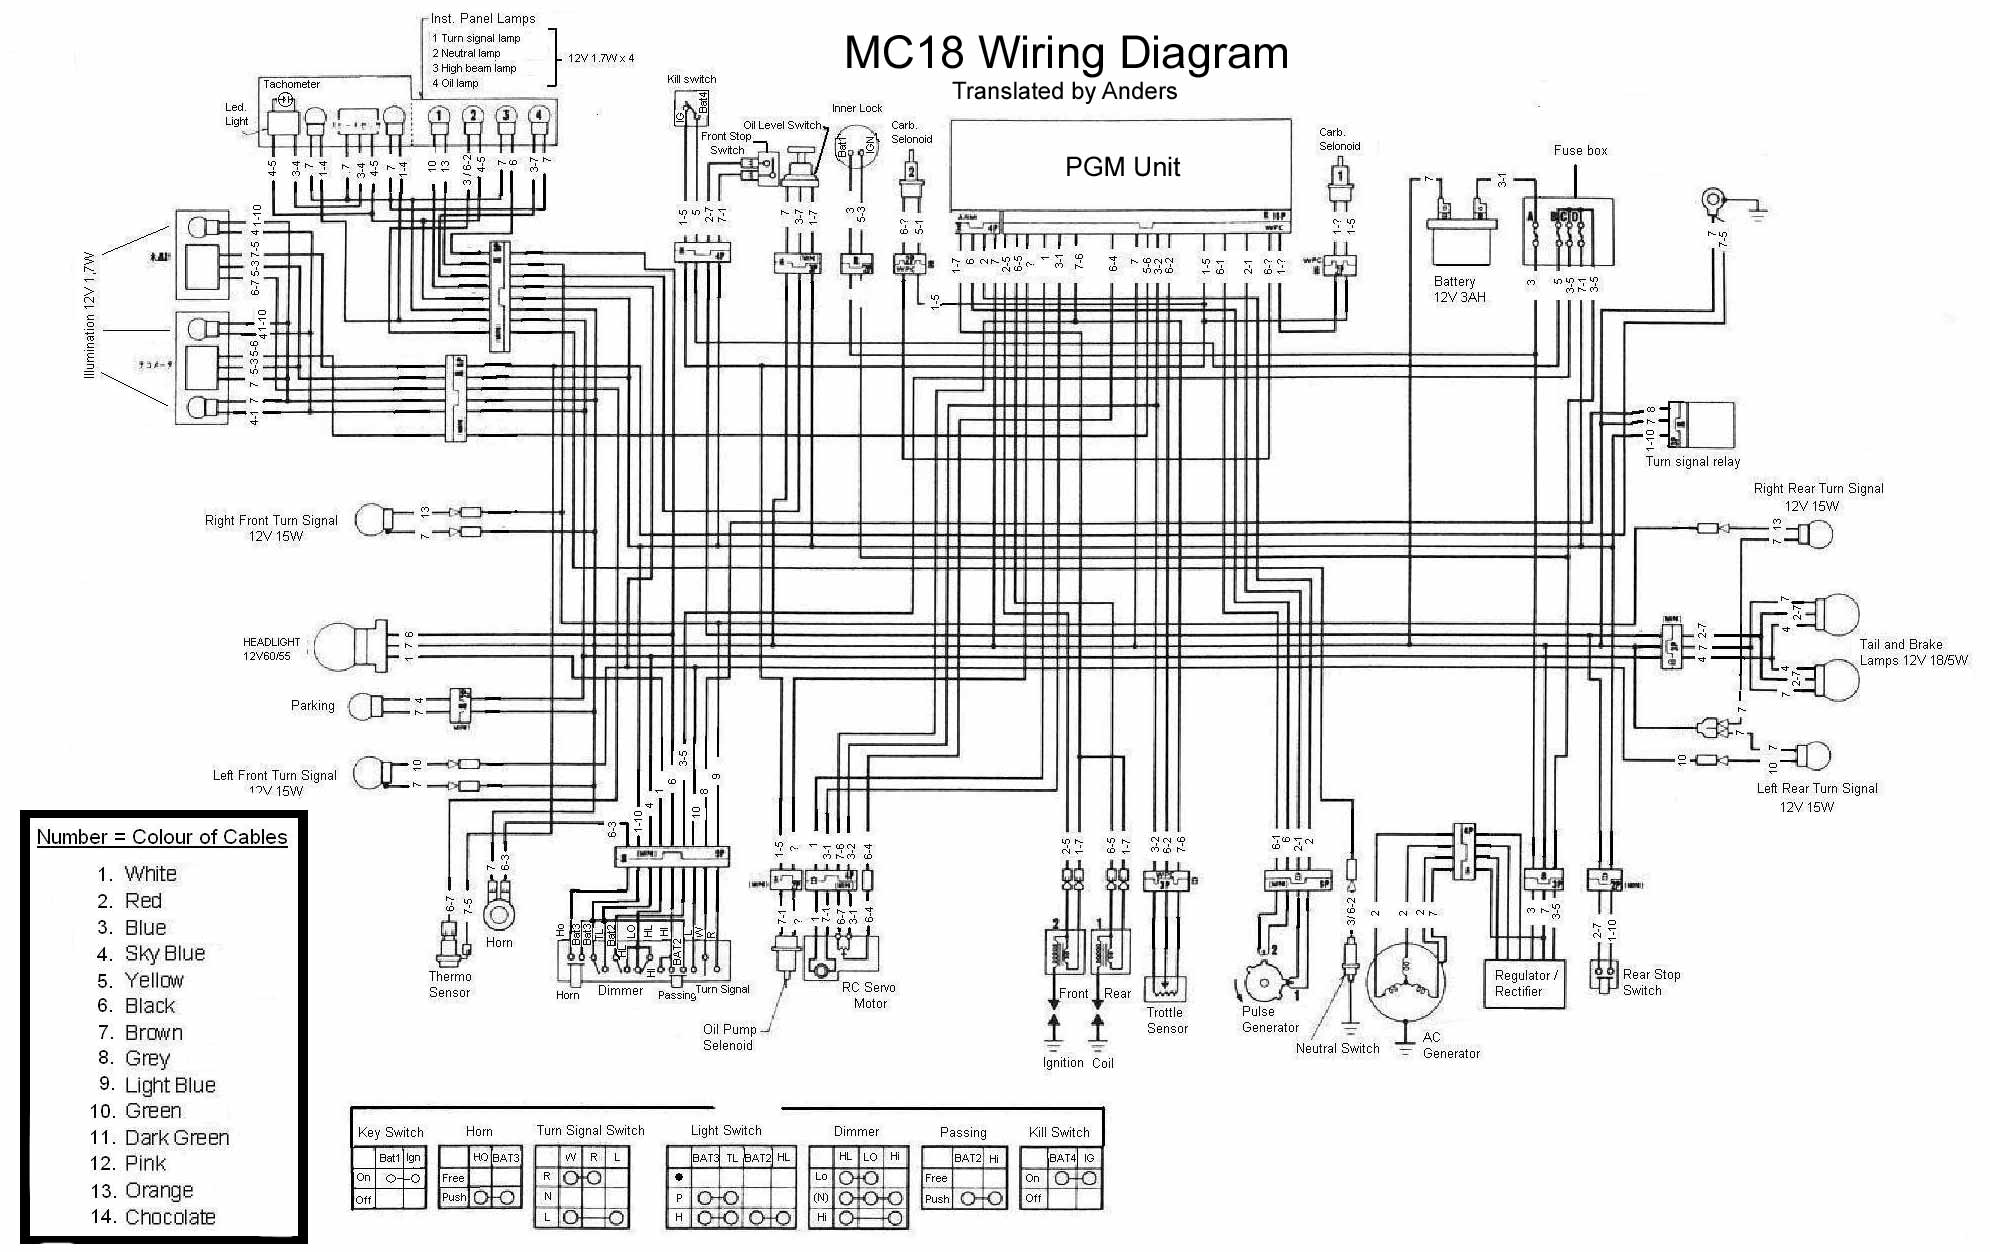 2012 Honda Cbr250r Wiring Diagram Wire Center 90 Shifter Circuit Tradeoficcom Nsr250 Diagrams Tyga Performance Rh Com Custom Www